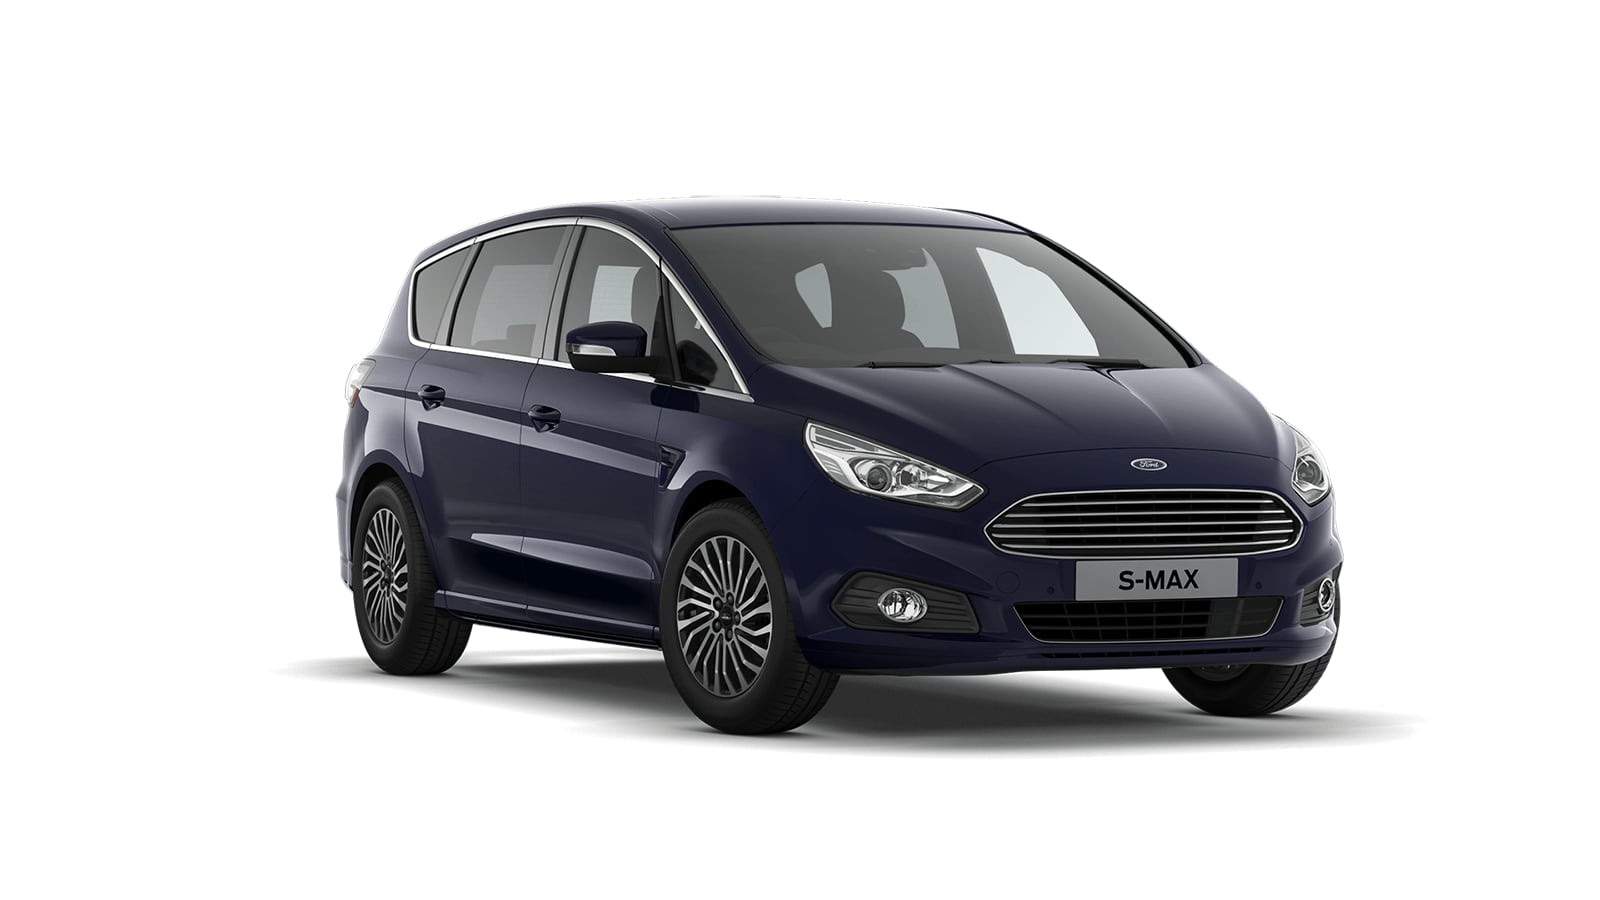 Ford S-MAX at Balmoral Garage